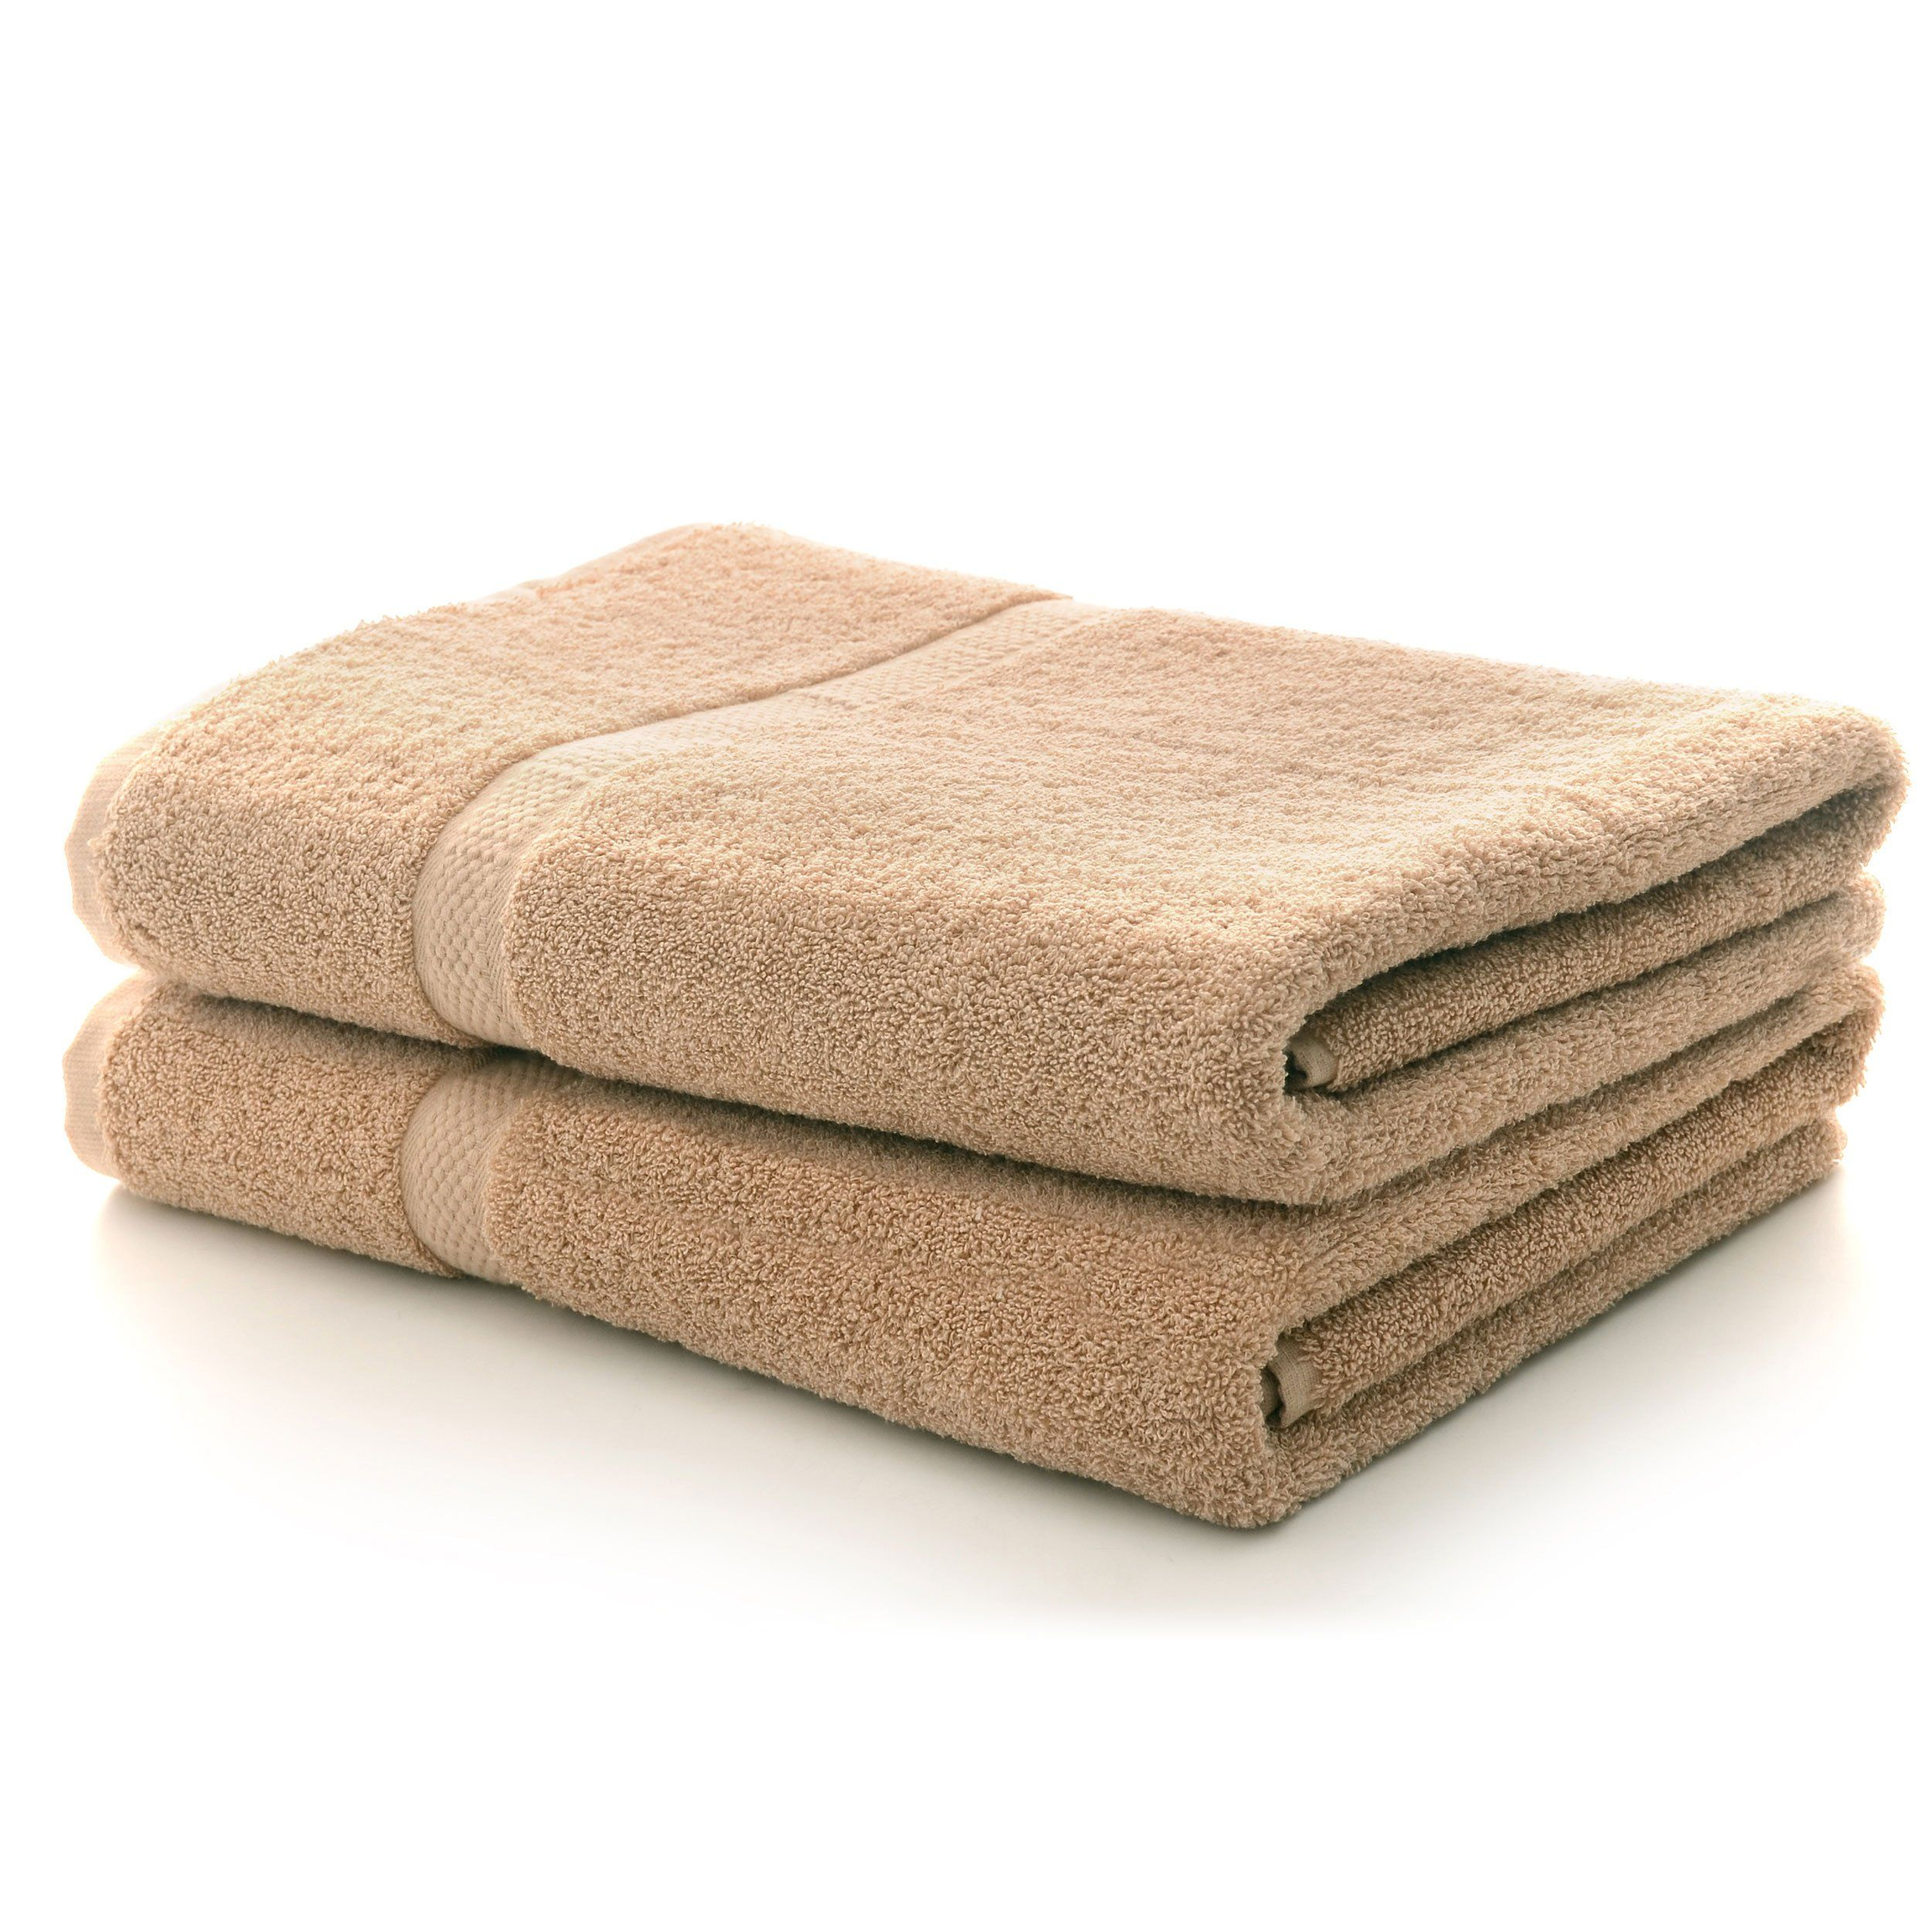 You Can T Go Wrong With Quality Luxurious Bath Towels Reveal The Simple Joy Of Stepping Out From The Shower Or Ba Towel Set Bath Towel Sets Bath Towels Luxury